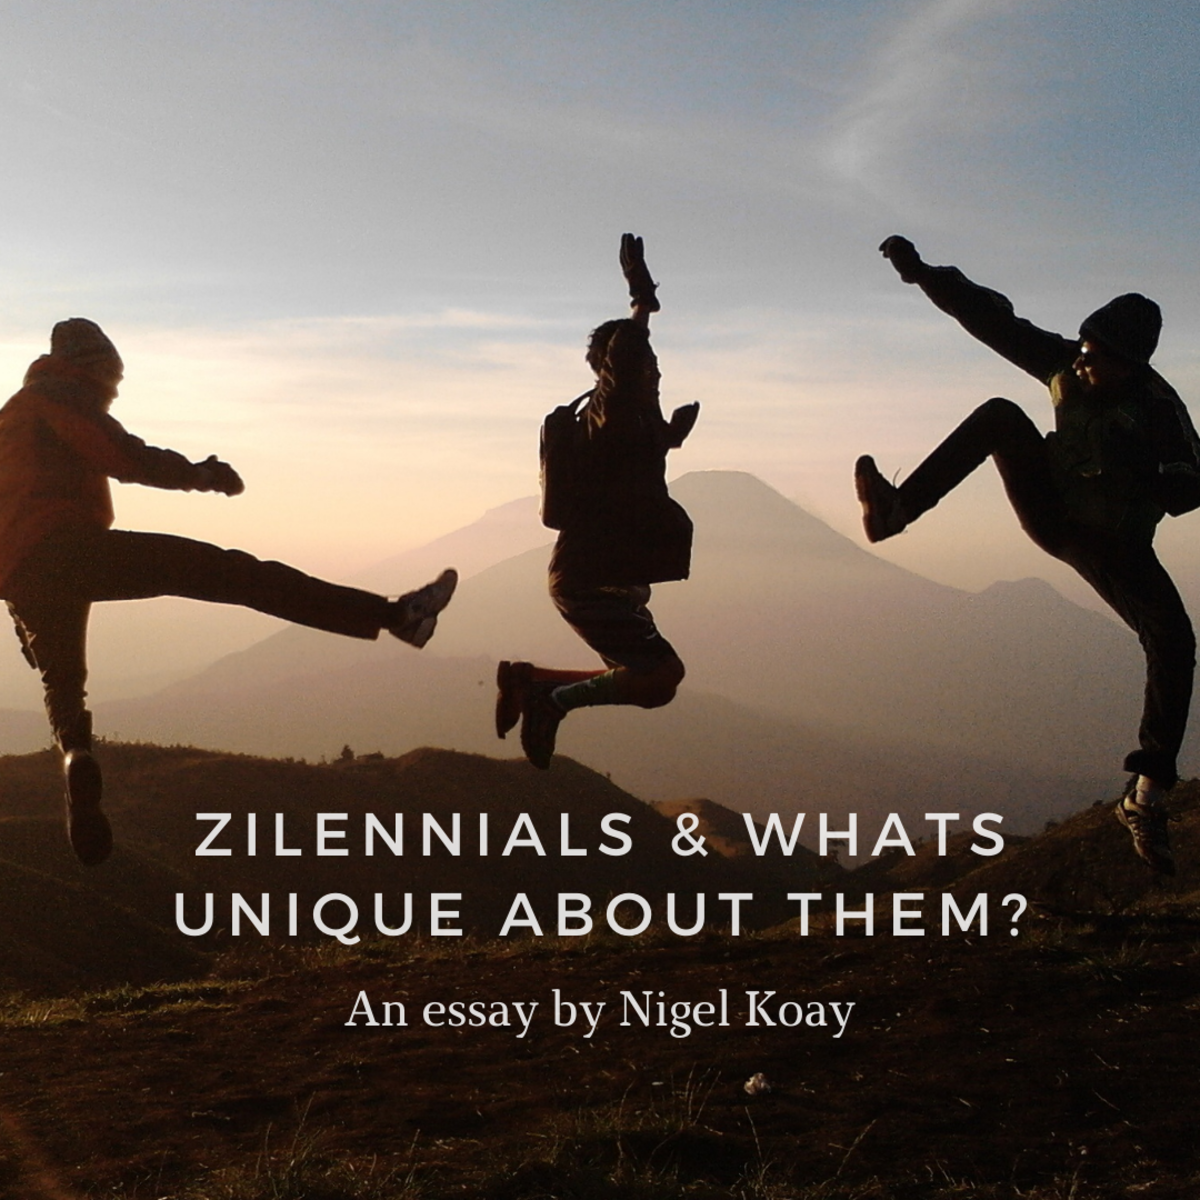 Zillennials, What's Unique About Us?